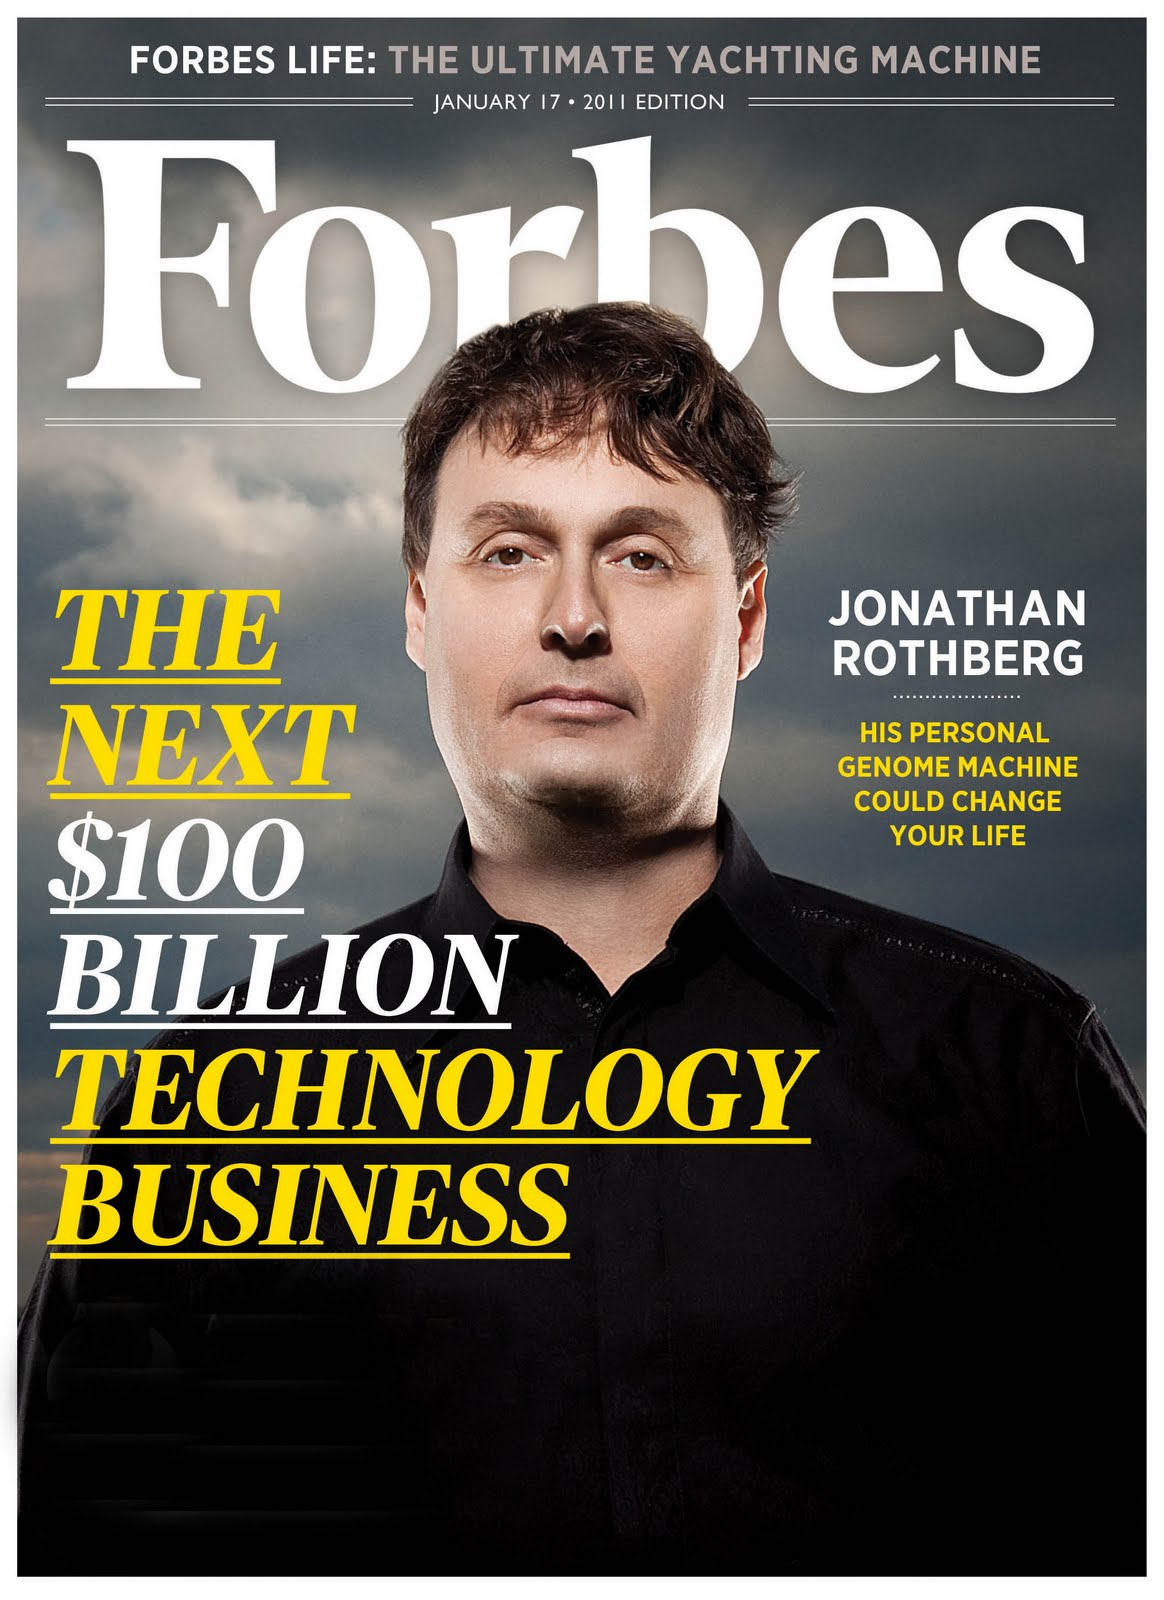 Forbes_cover011711.jpg